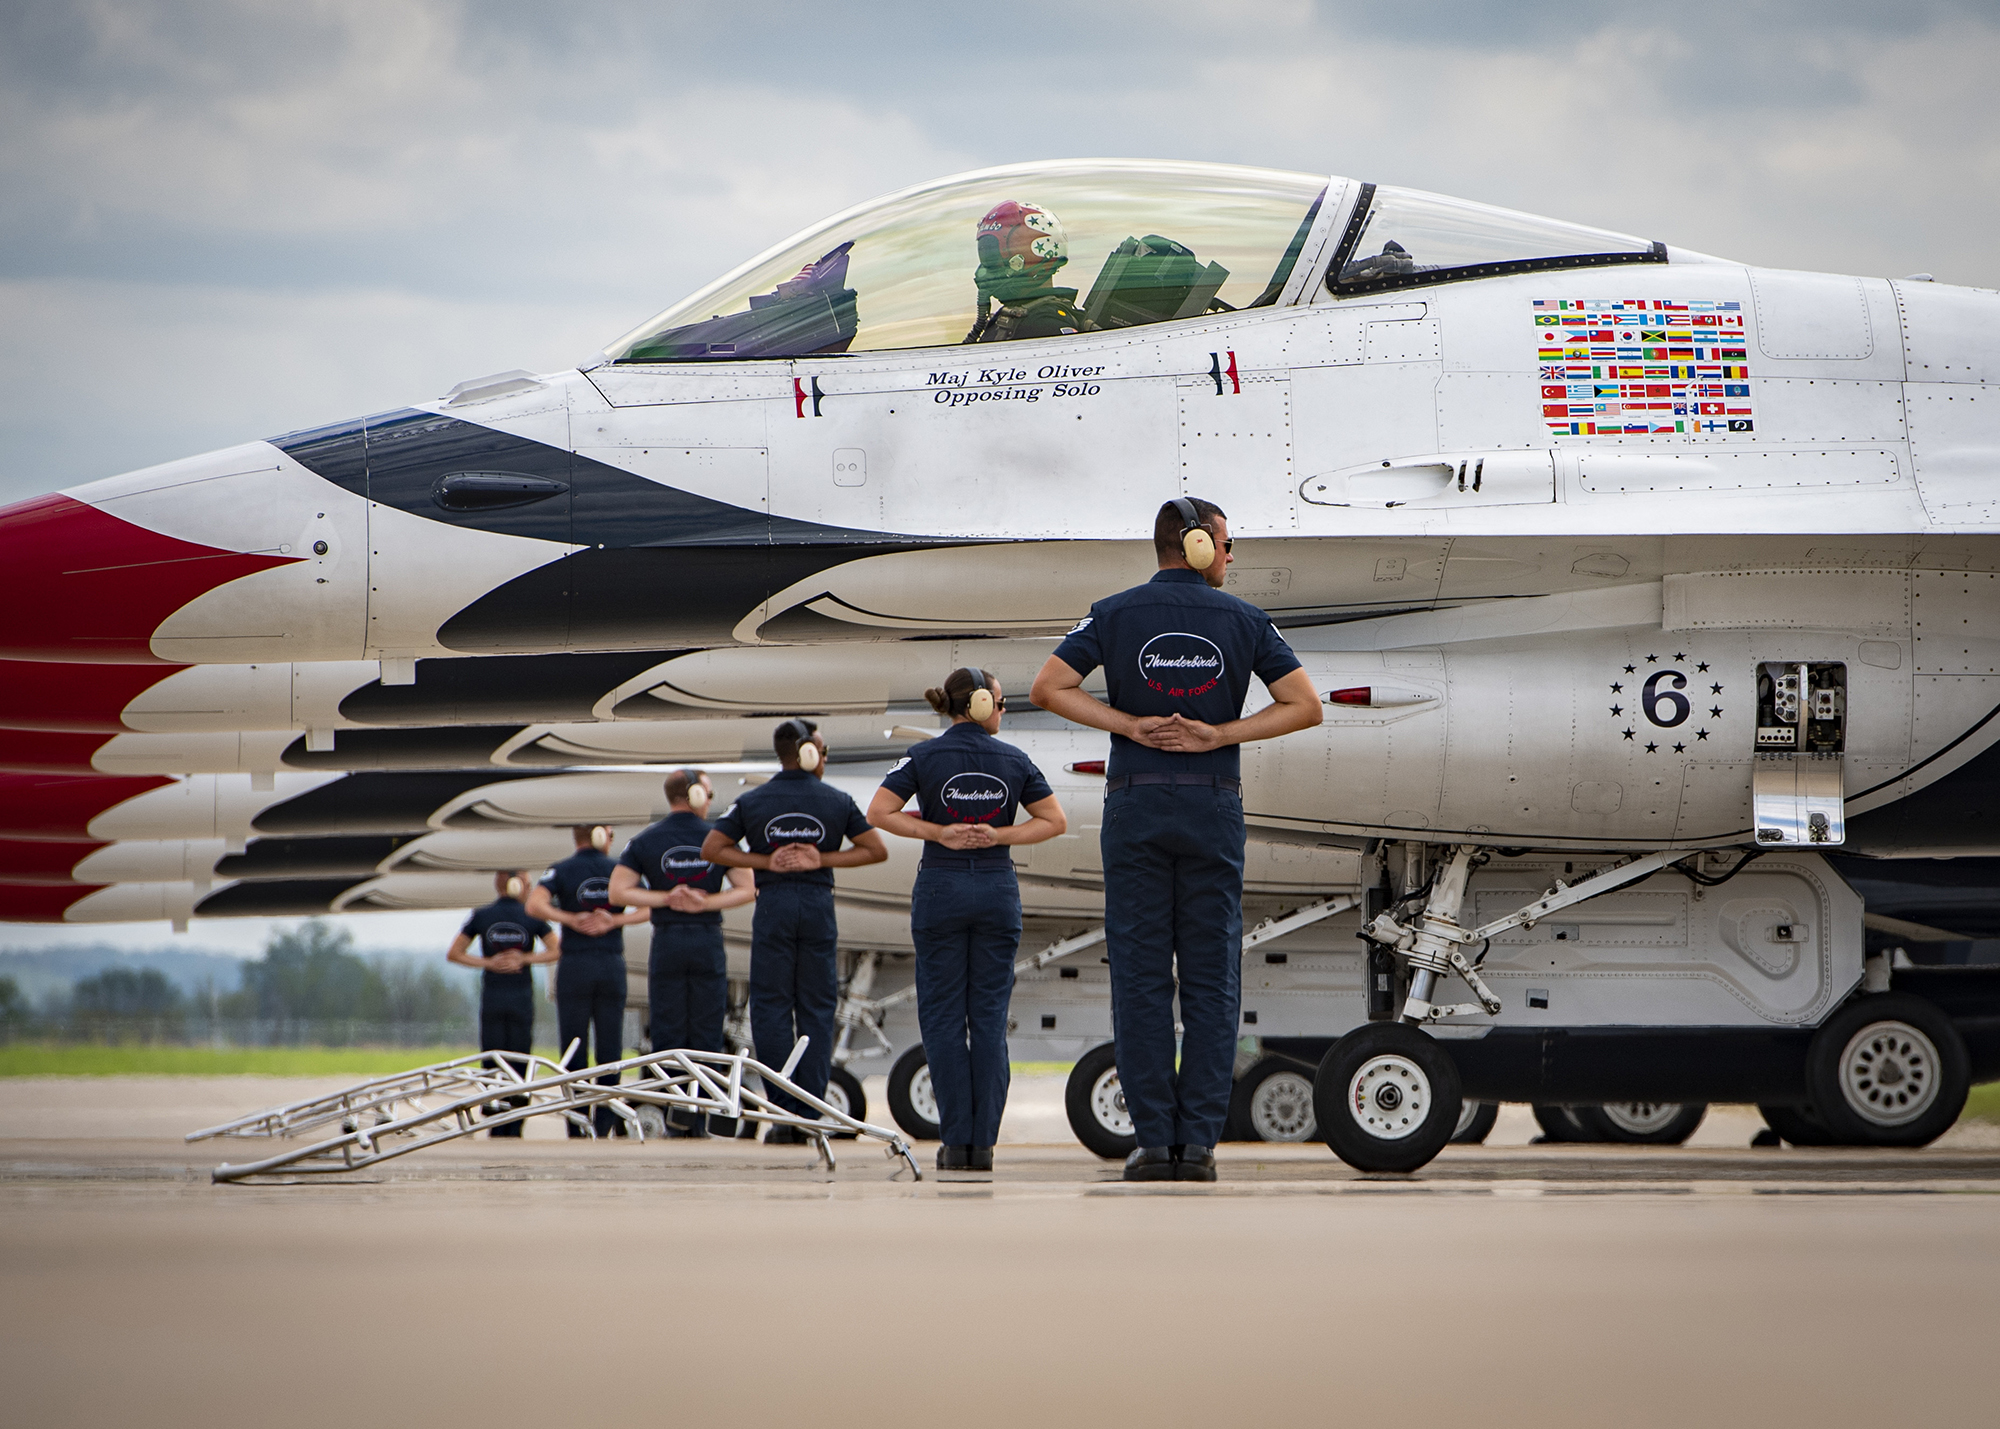 """The United States Air Force Air Demonstration Squadron """"Thunderbirds"""" line up in formation before performing in the Sound of Speed Air Show in St. Joseph, Mo., May 2, 2021. This was the first time the team performed in St. Joseph in more than three decades. (Staff Sgt. Andrew D. Sarver/Air Force)"""